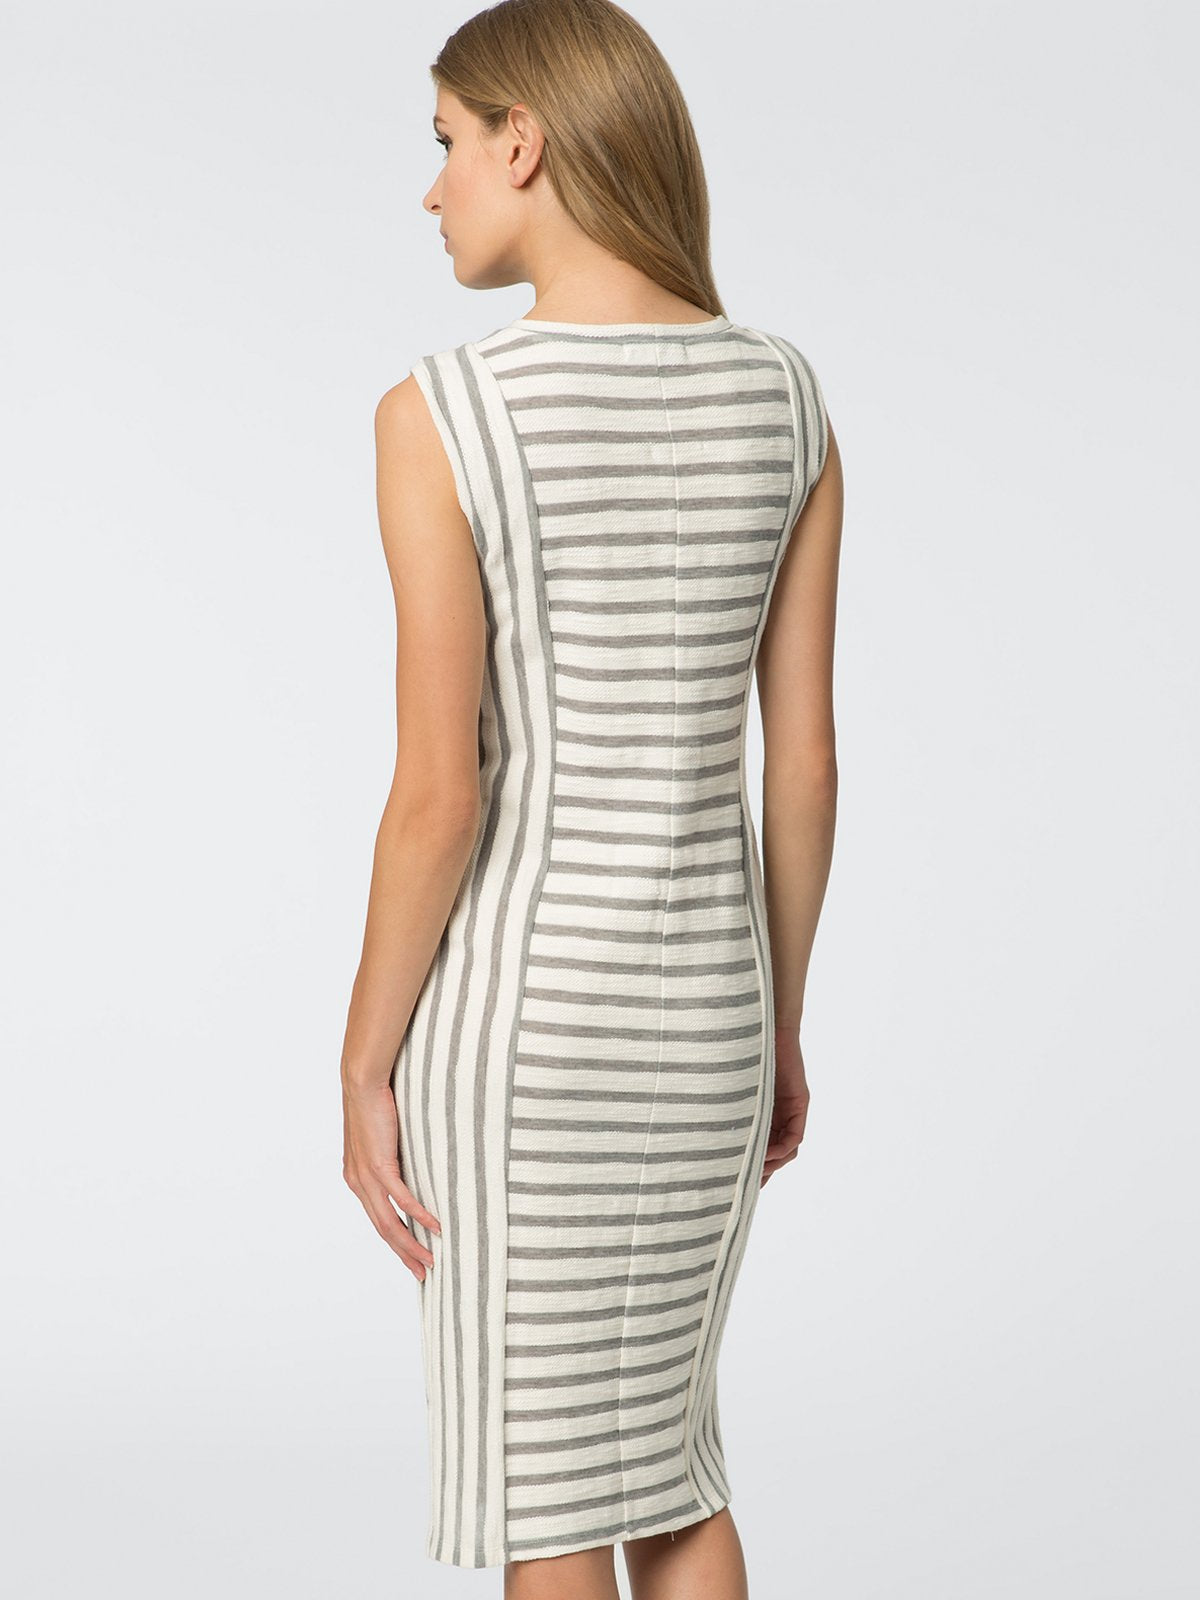 525 America Slub Stripe Sleeveless Dress